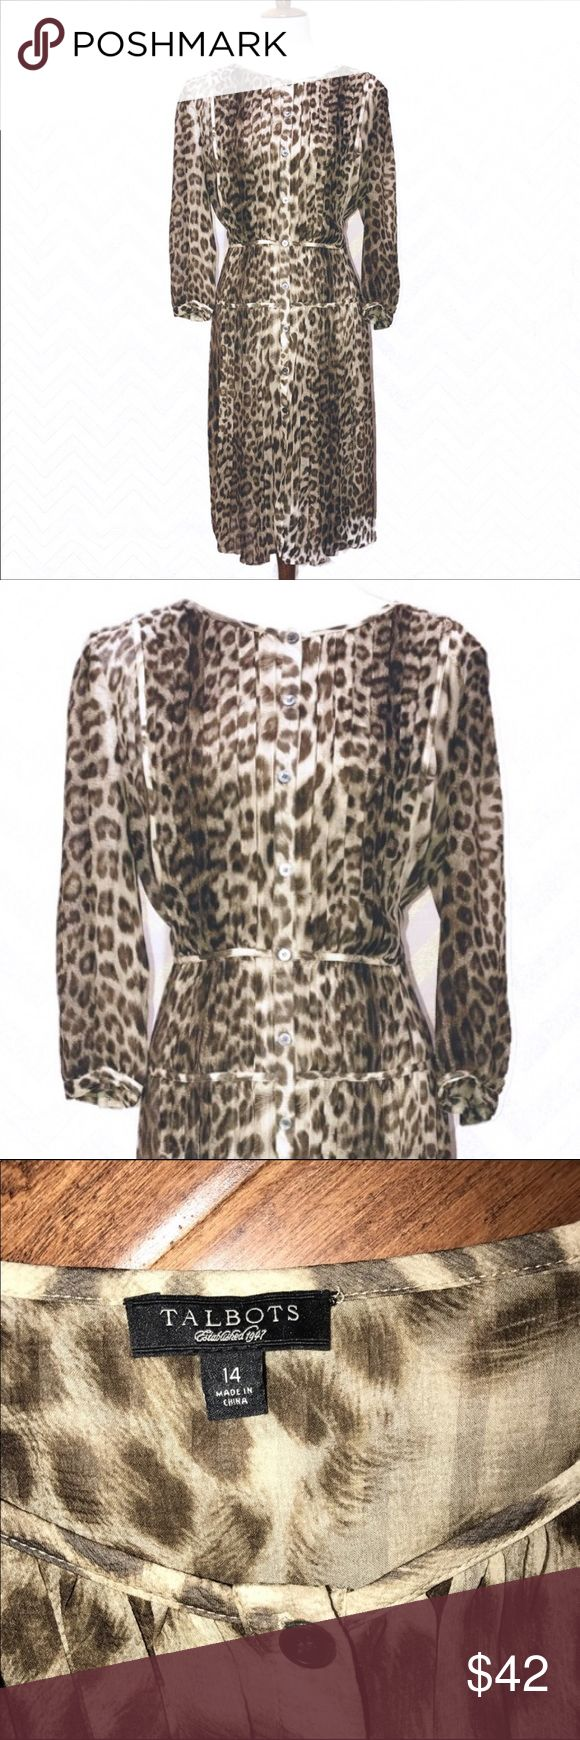 Talbots Silk Cheetah Dress Sz 14 Talbots animal print dress. Rounded neckline, buttons all way down in front. Pleated in front and back. Drop waist. 3/4 sleeves. 100% georgette semi sheer wispy silk. Originally came with nude slip but cannot find it, so not included, but any spaghetti strap nude color slip will work fine.  Material content/care tag missing (was inside the slip). Talbots Dresses Midi